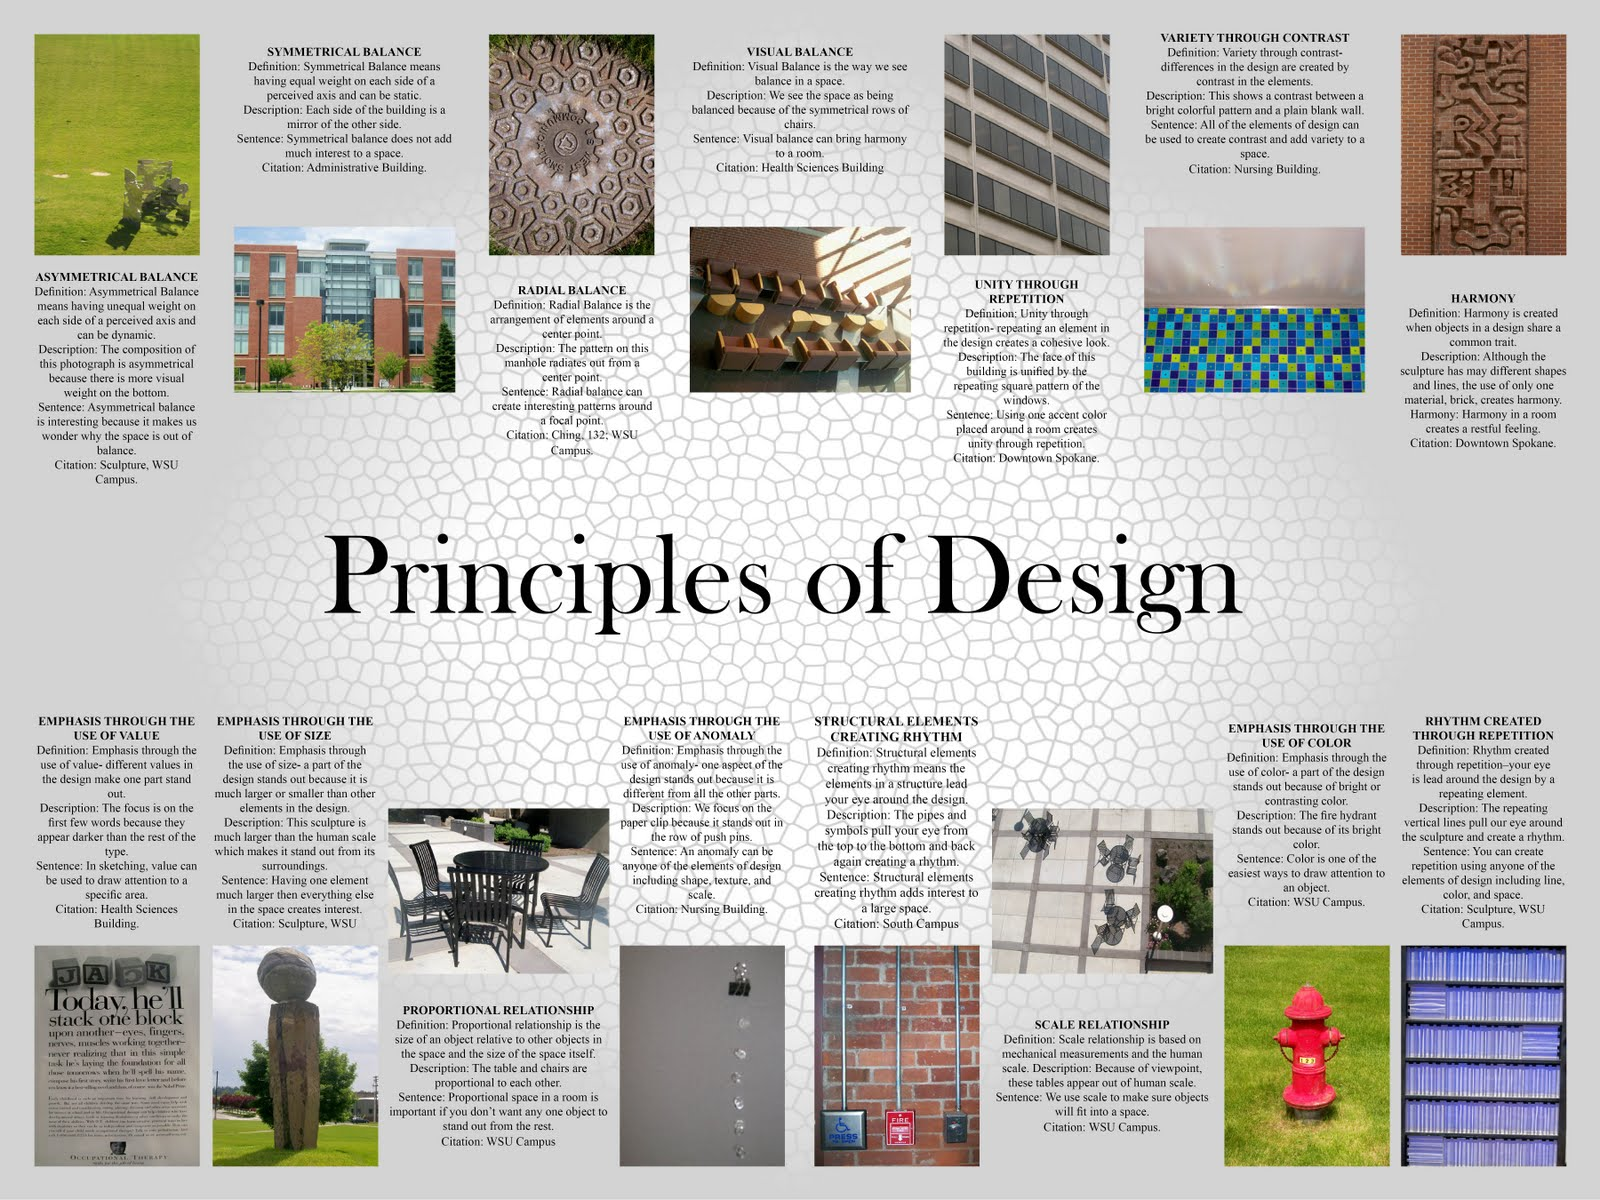 List Of Elements Of Design : Shannon stewart elements and principles of design